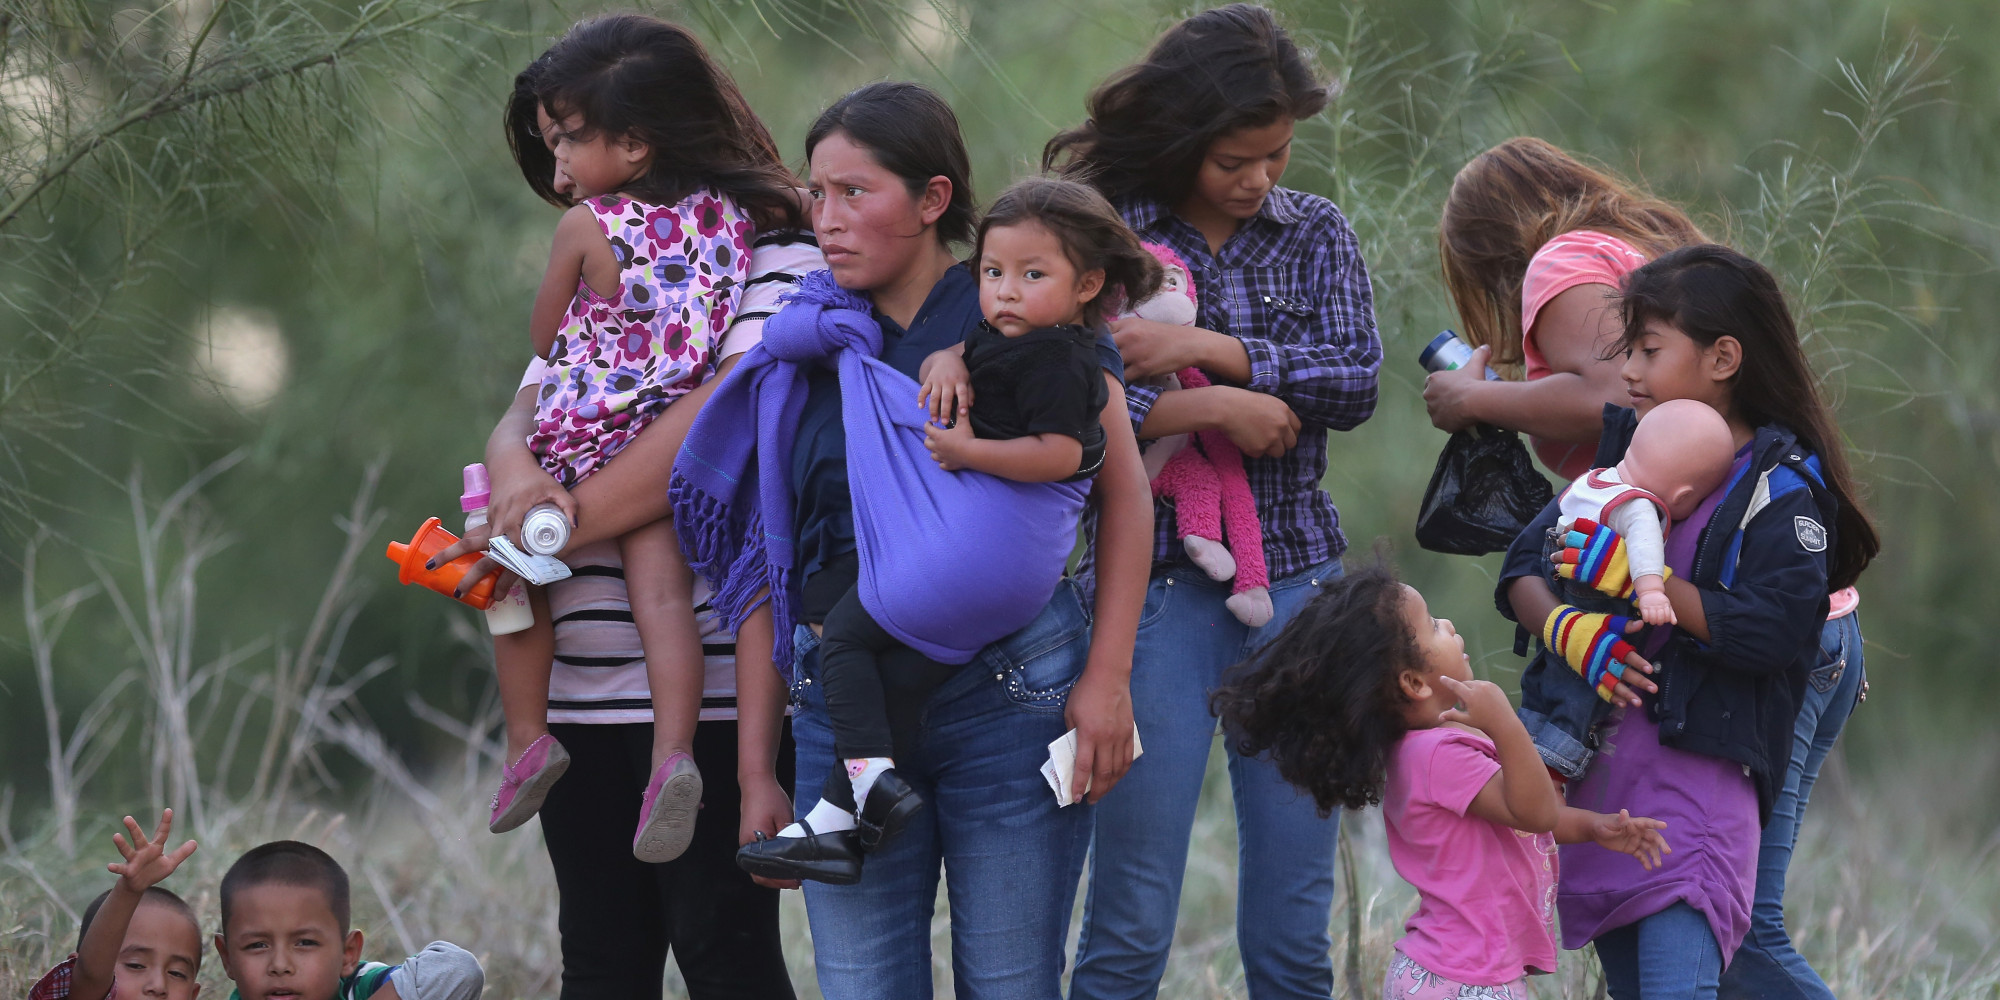 80% Of Central American Women, Girls Are Raped Crossing Into The U.S.